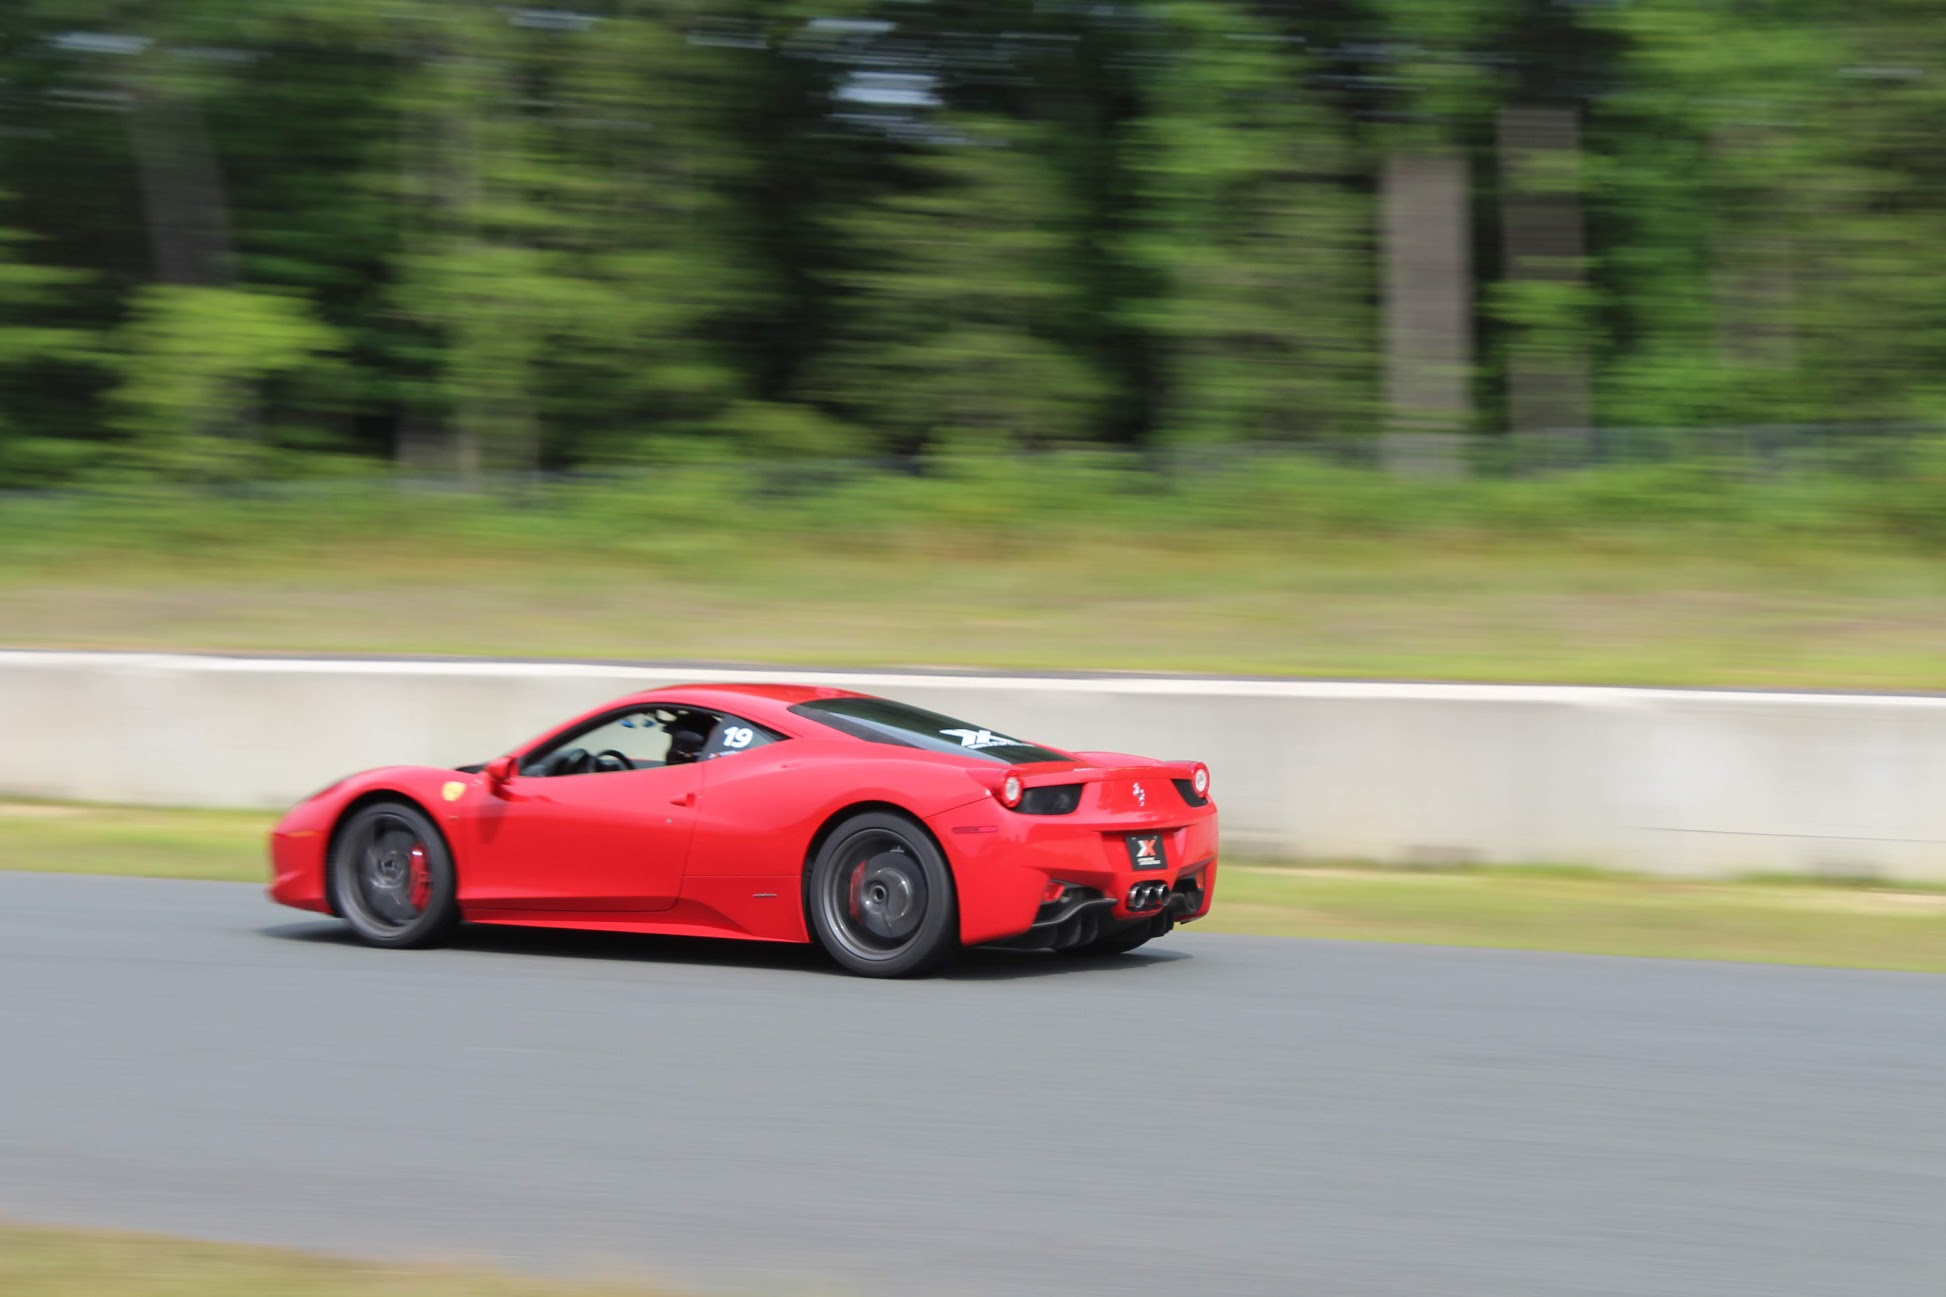 Cheap ways to drive on a race track